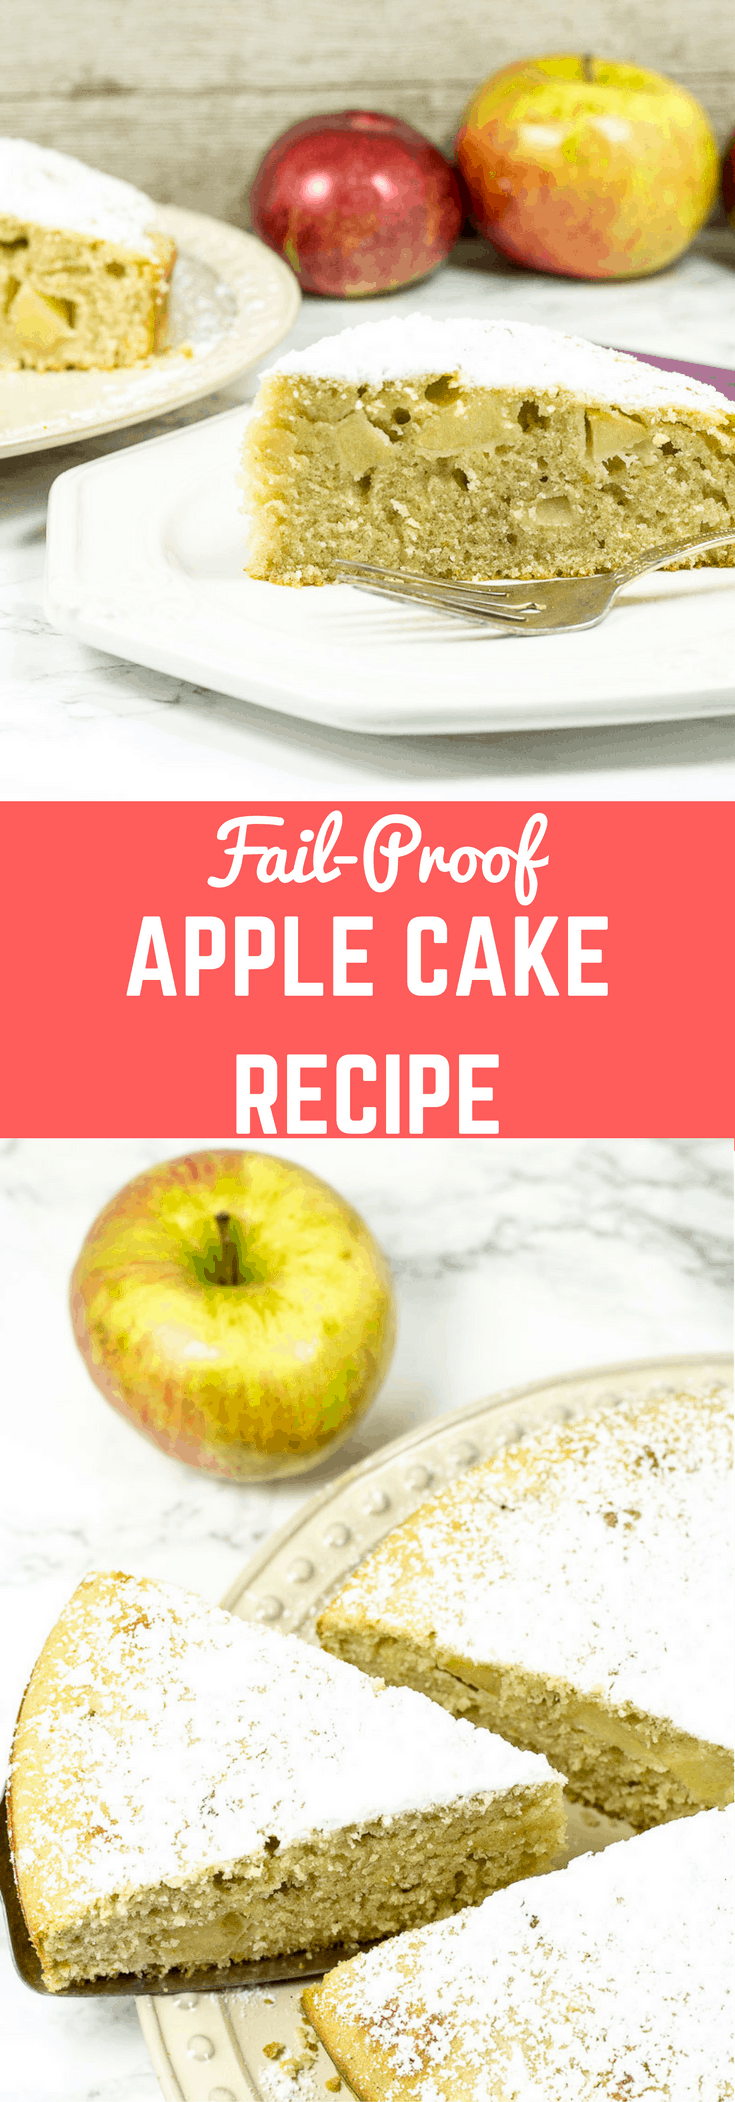 The best apple cake recipe made with fresh apples. This fresh apple cake recipe is perfect for fall any time of the year.